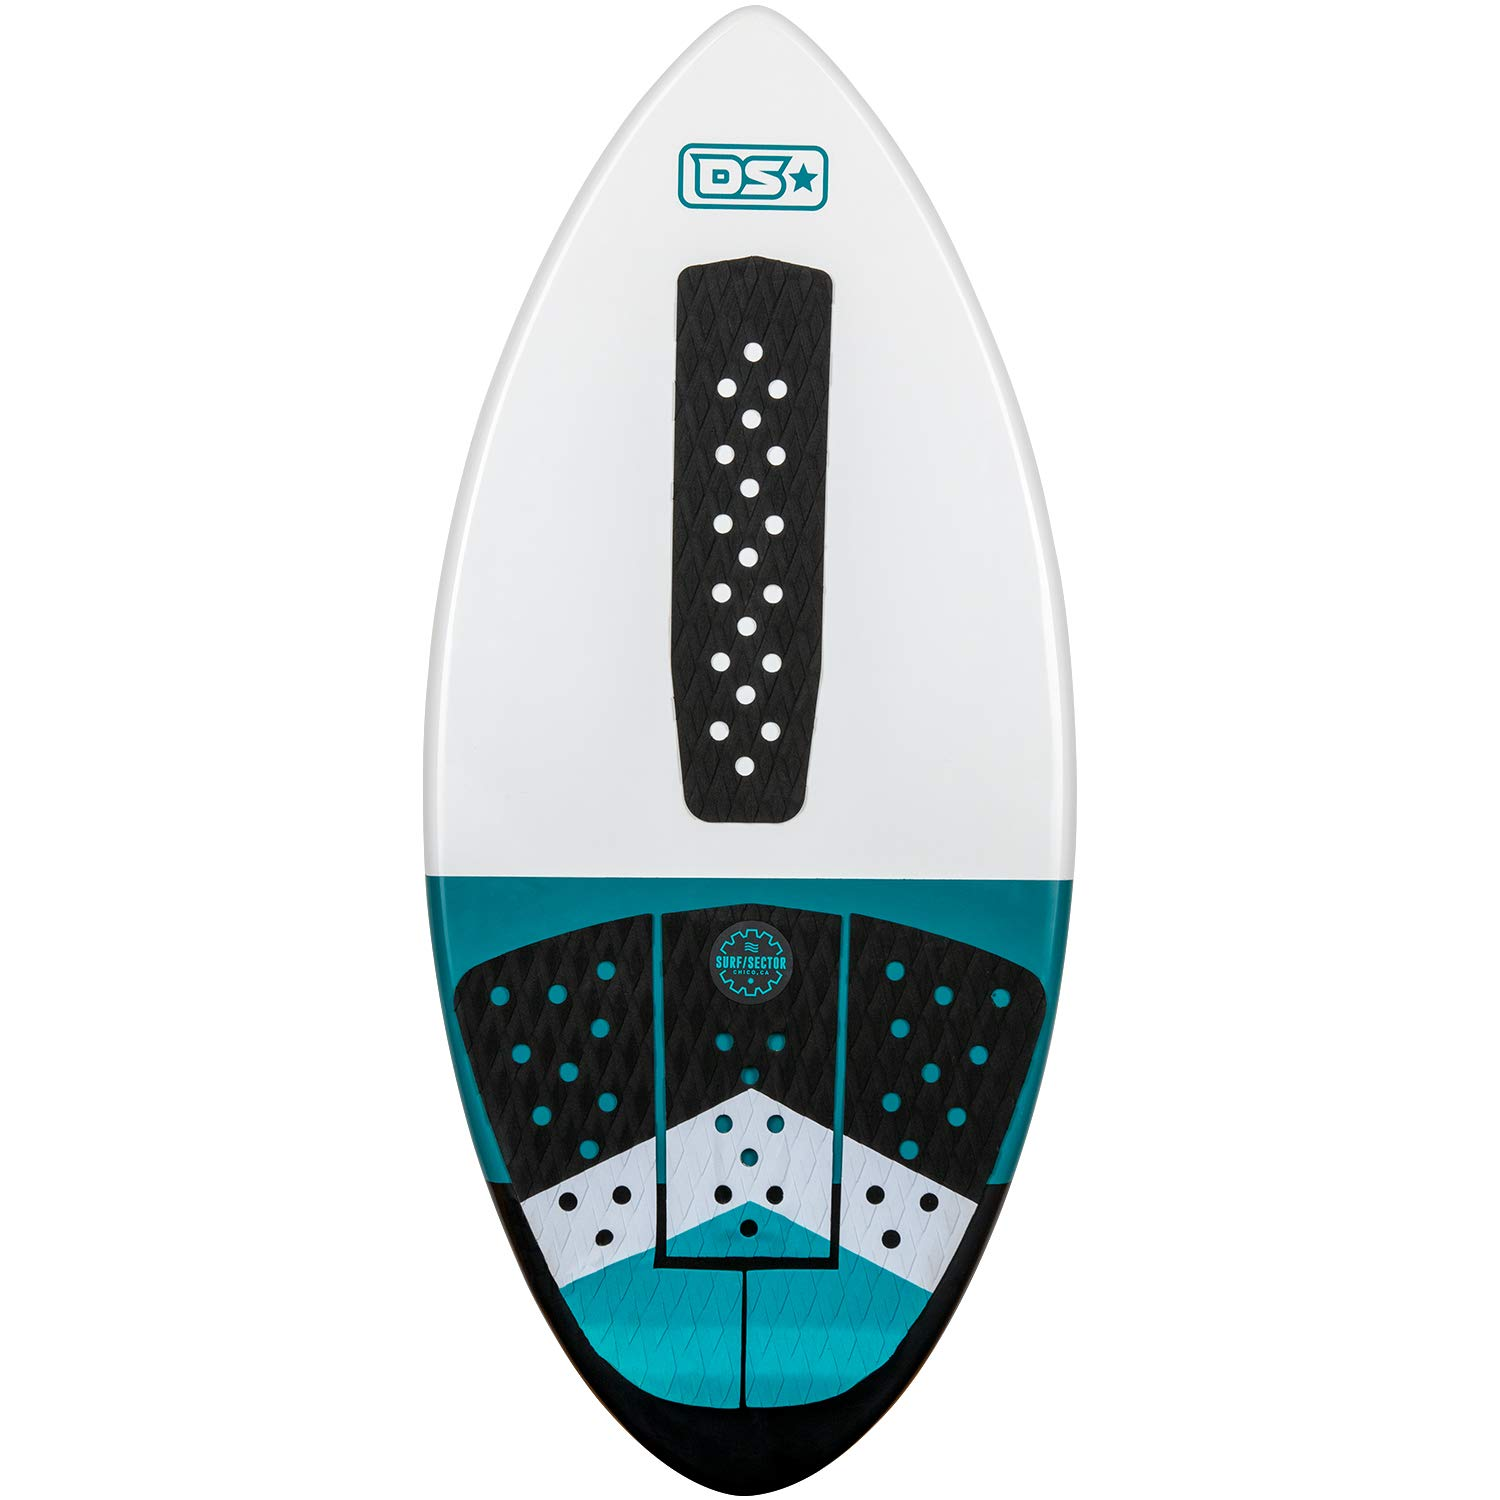 Driftsun Fiberglass Performance Skimboard for Kids and Adults with EVA Traction Pad, 44, 48, and 52 inch Sizes, Carbon Fiber Reinforced